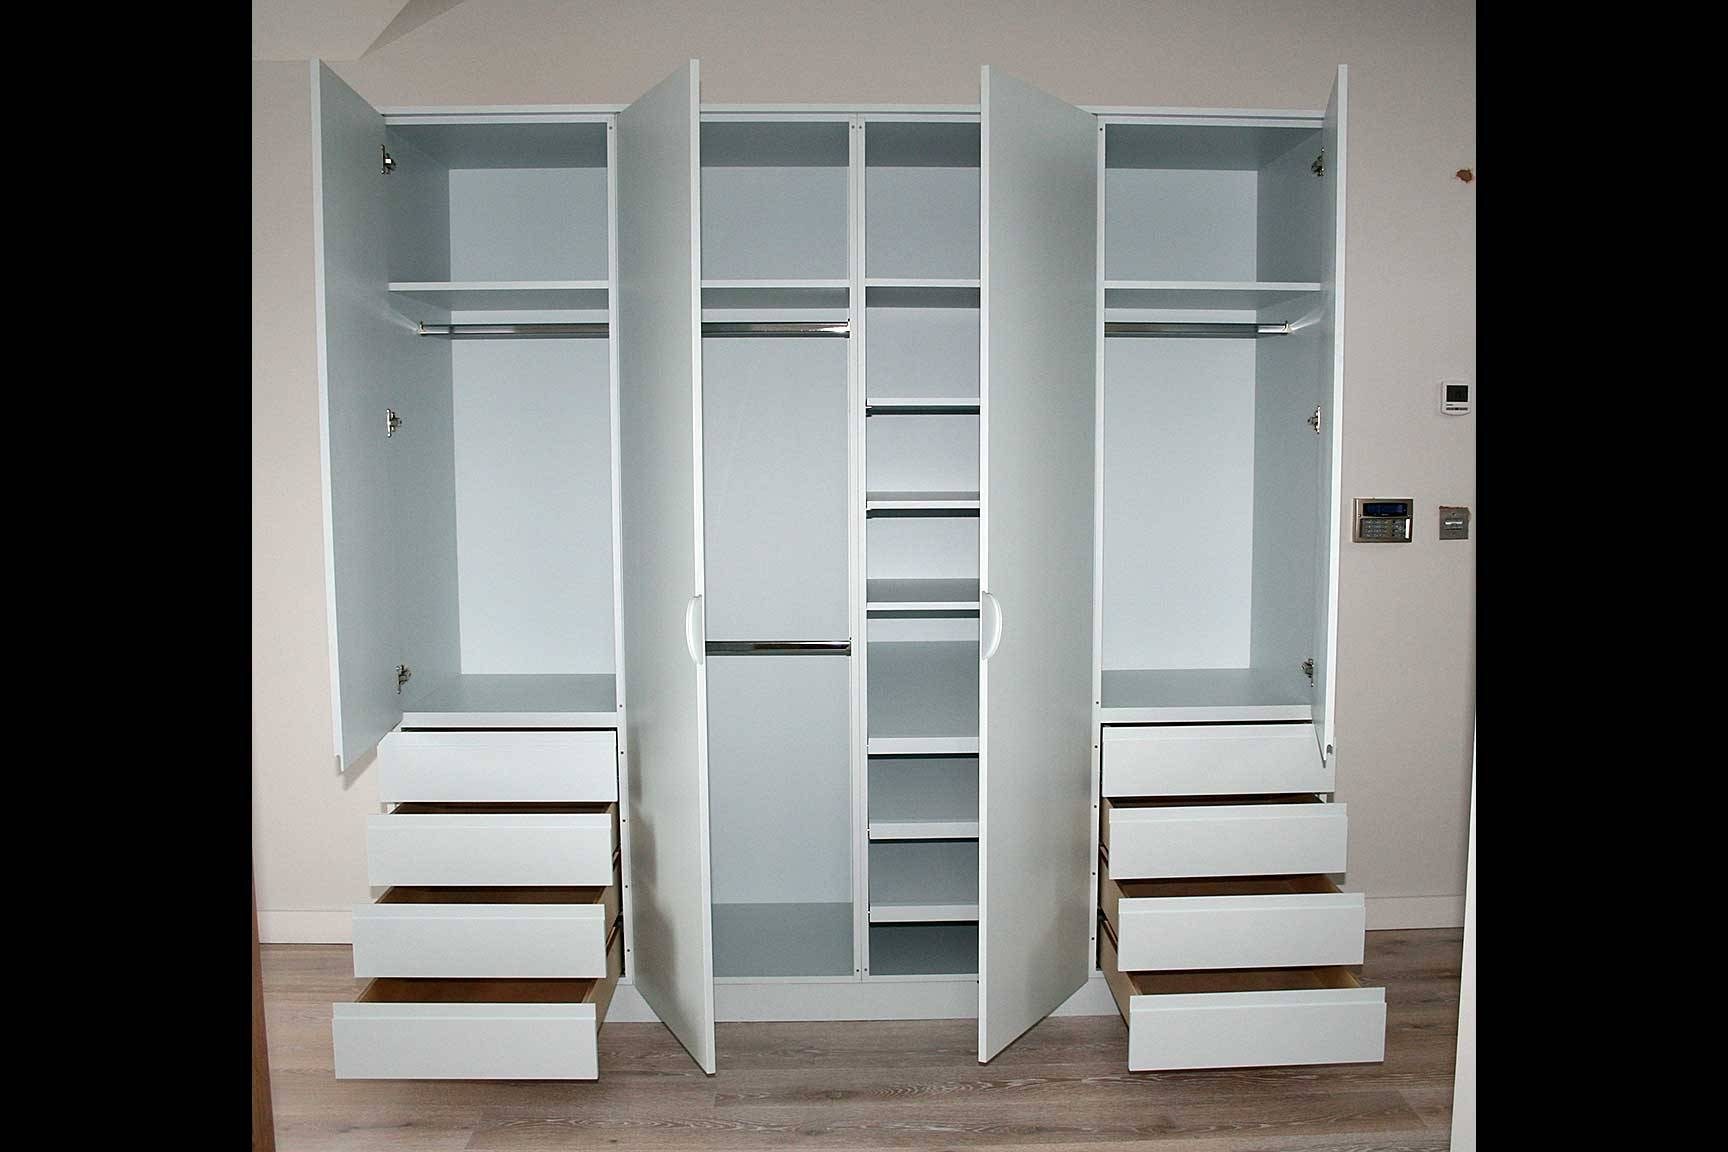 Chartwood Design Ltd - Bedrooms & Wardrobes regarding Drawers And Shelves For Wardrobes (Image 18 of 30)